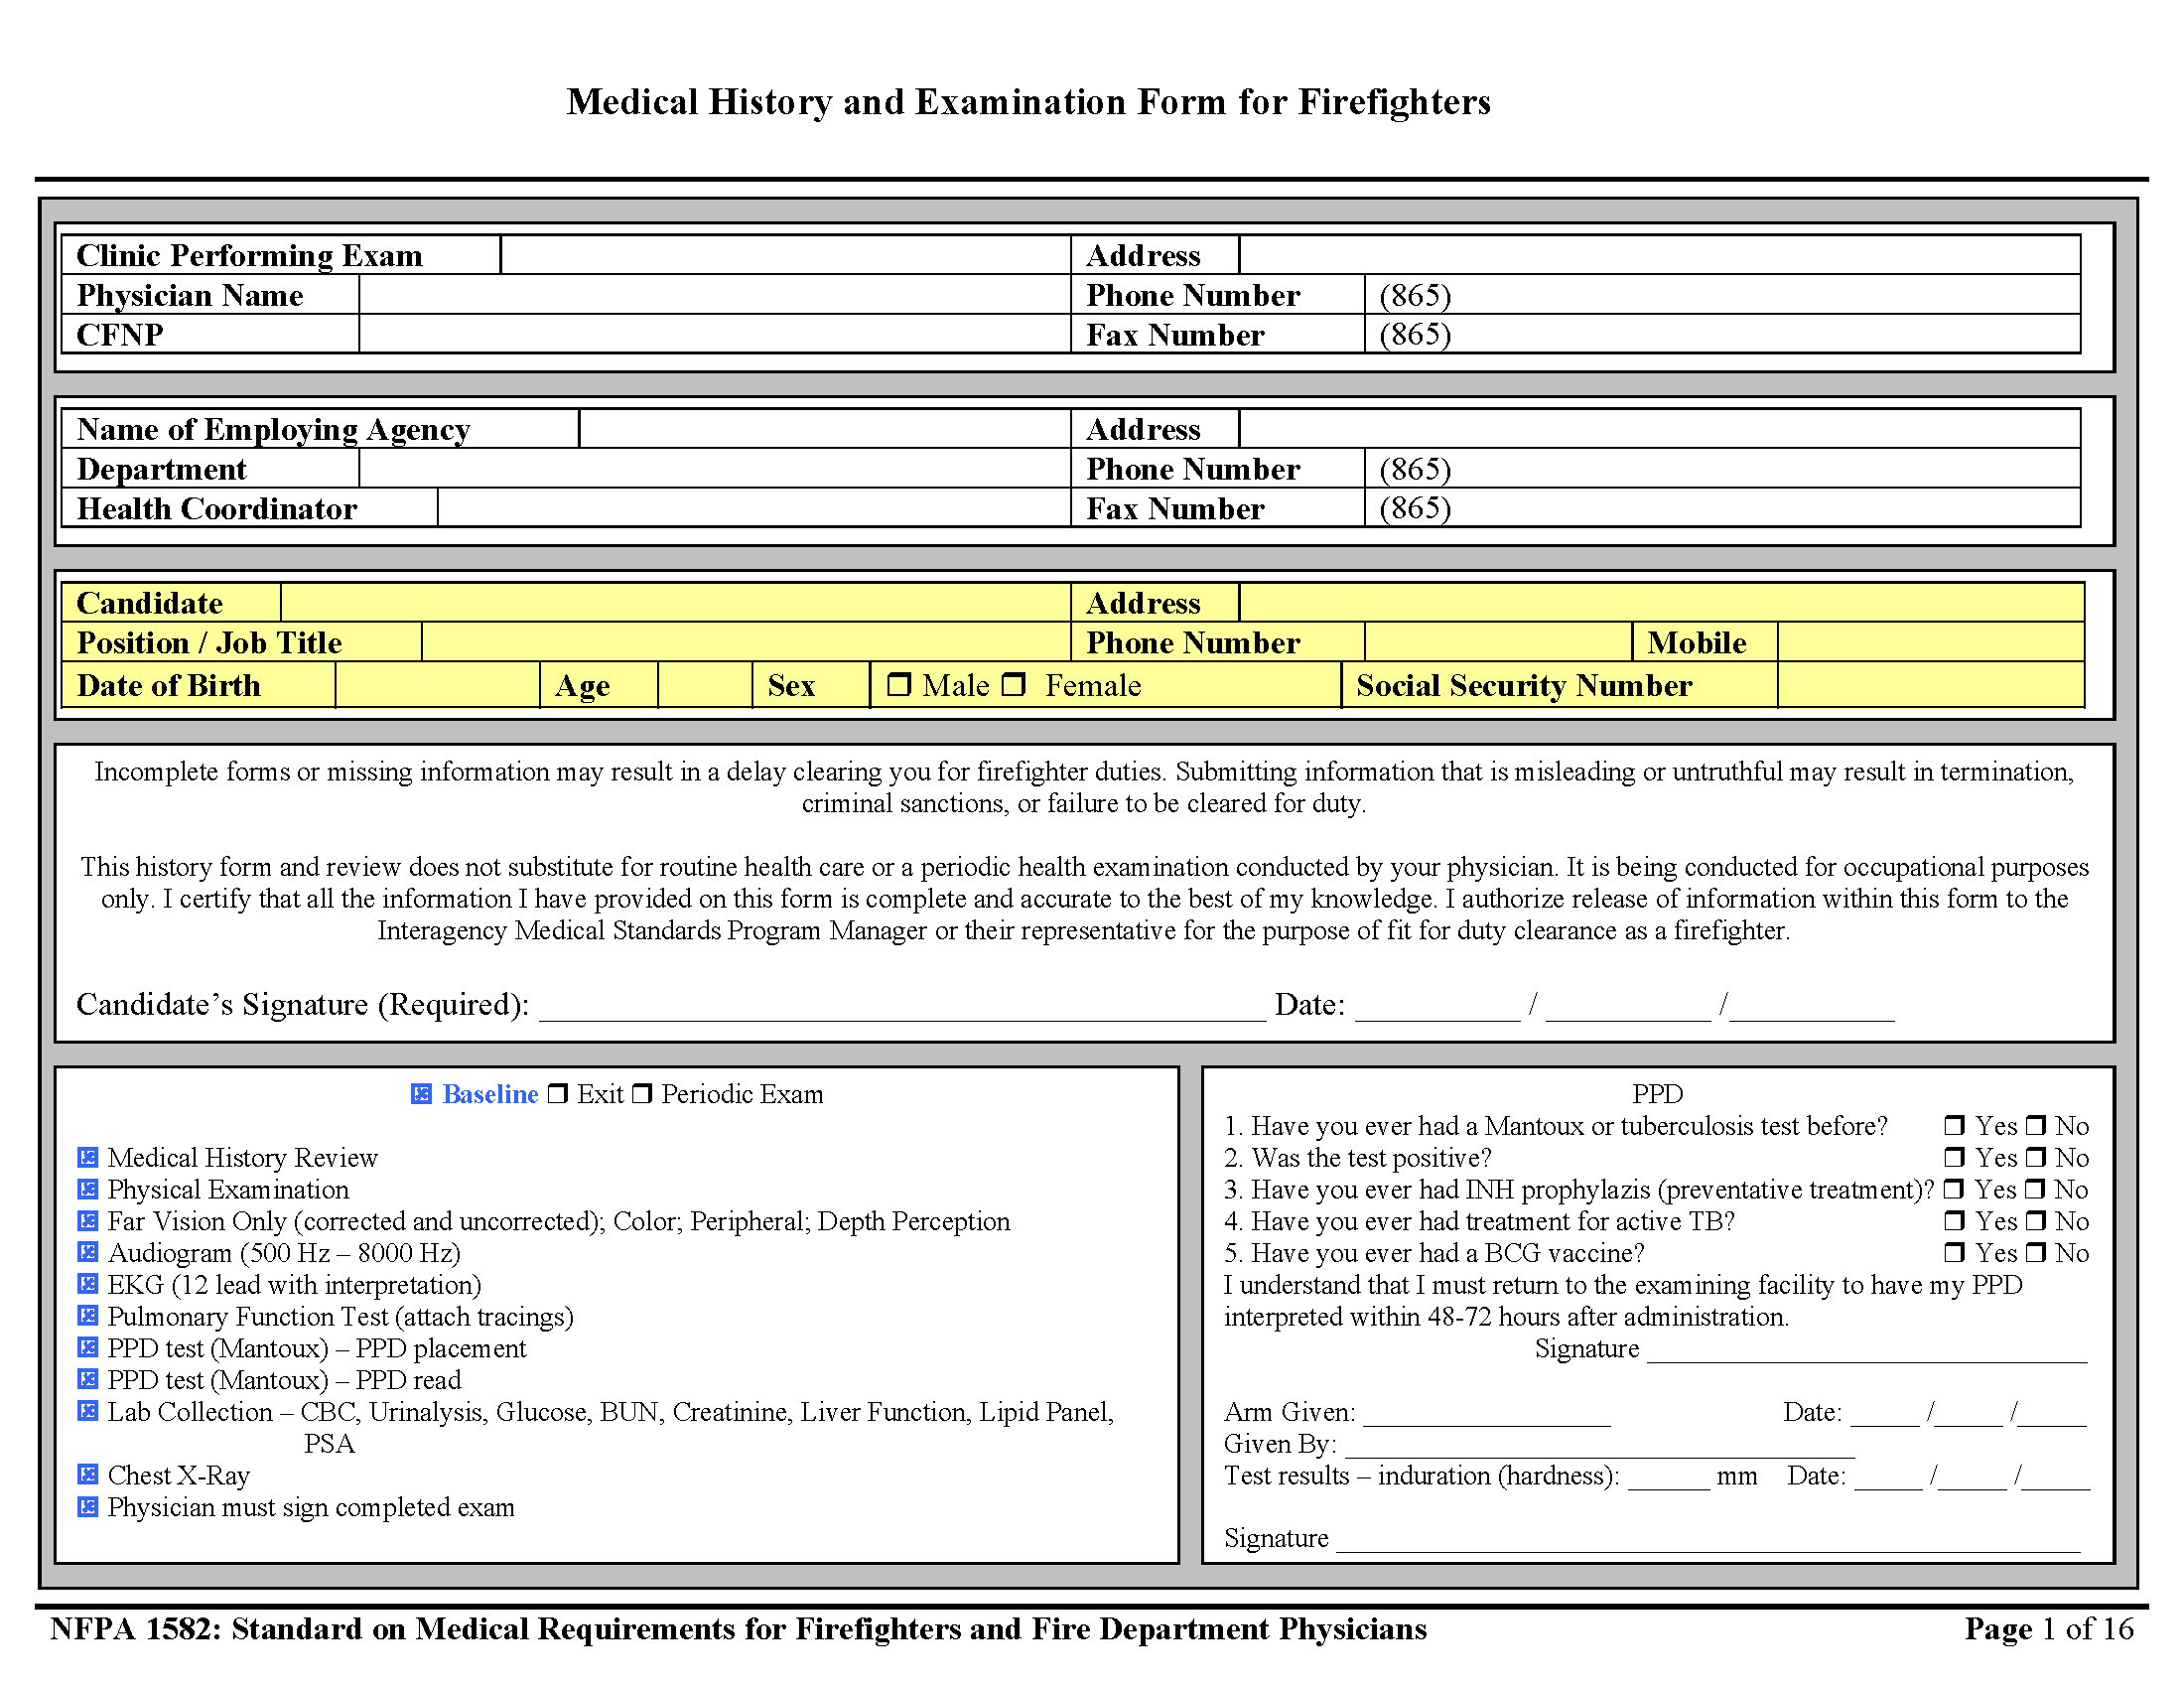 Page 1 of Firefighter Physical Form